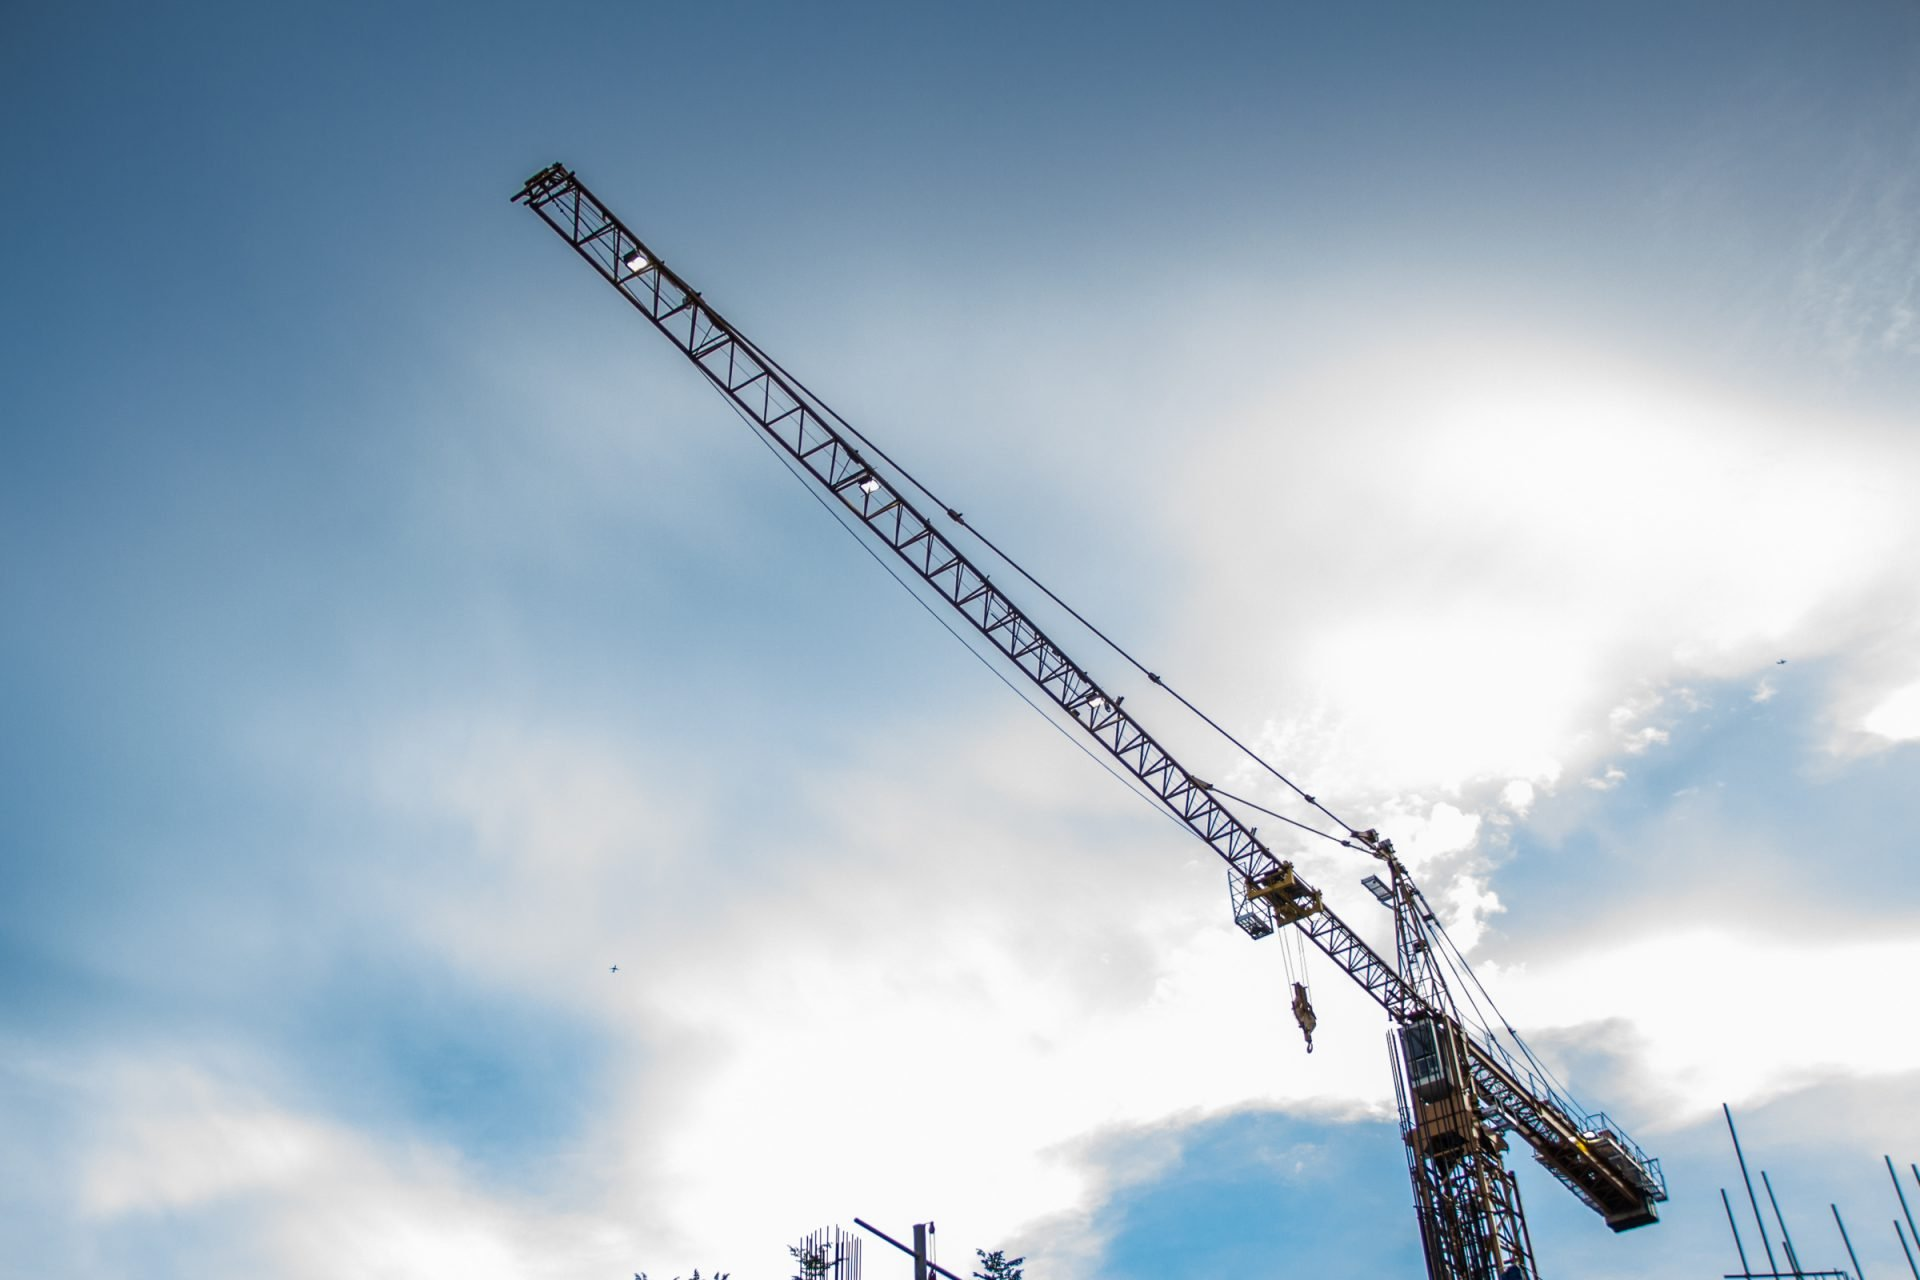 Crane Jib Against Clouds In Sky